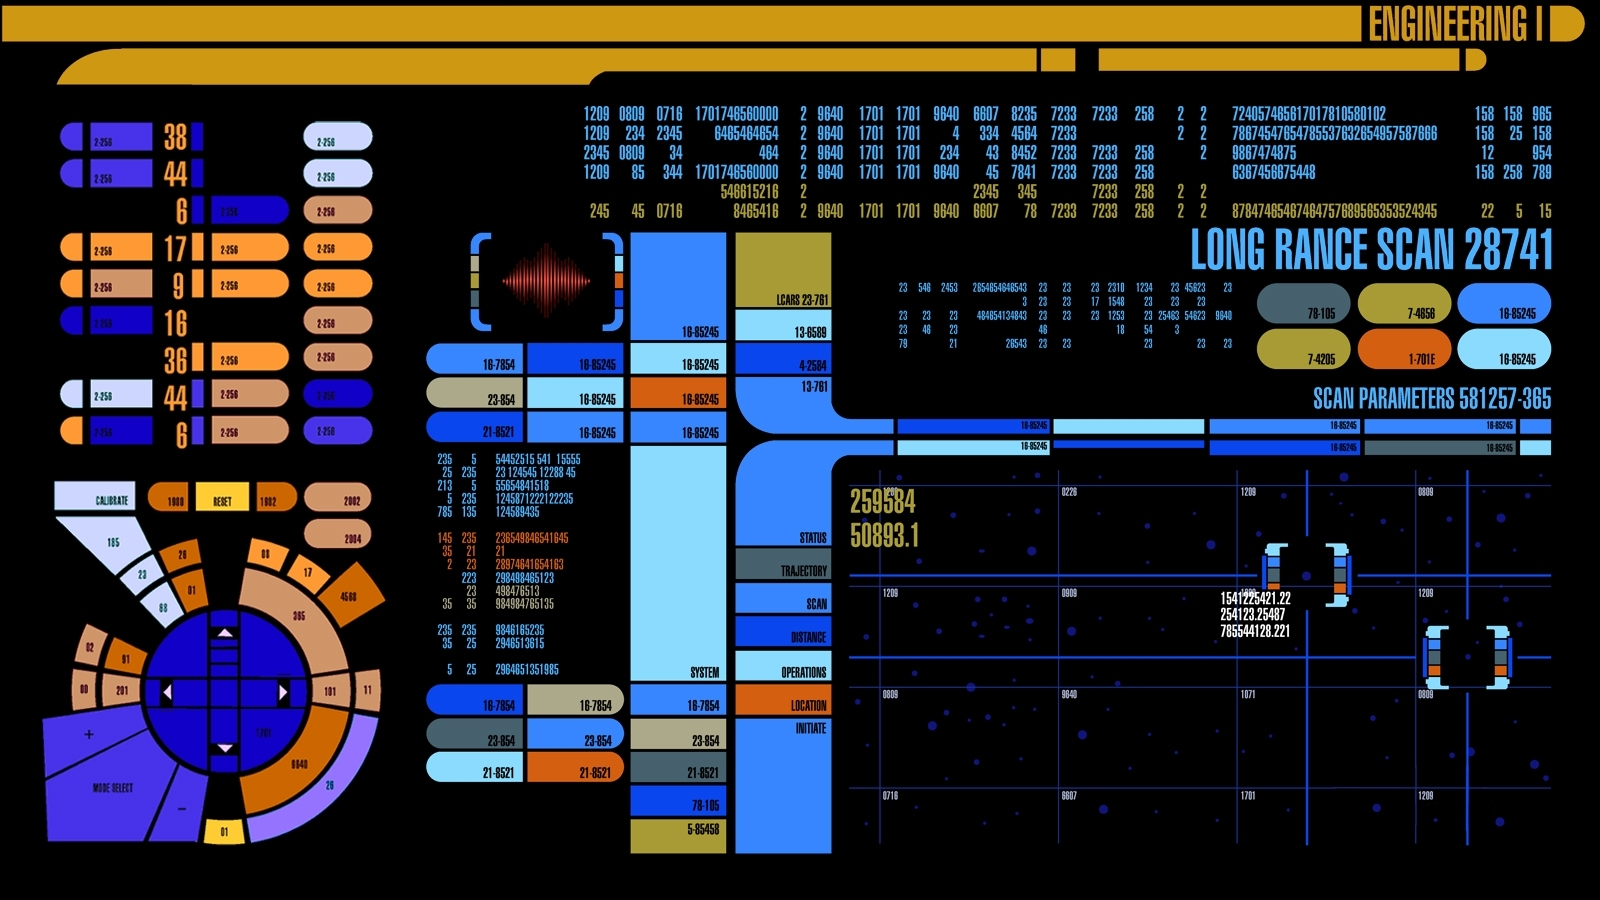 control lcars starship 1600x900 wallpaper Wallpaper Wallpapers 1600x900